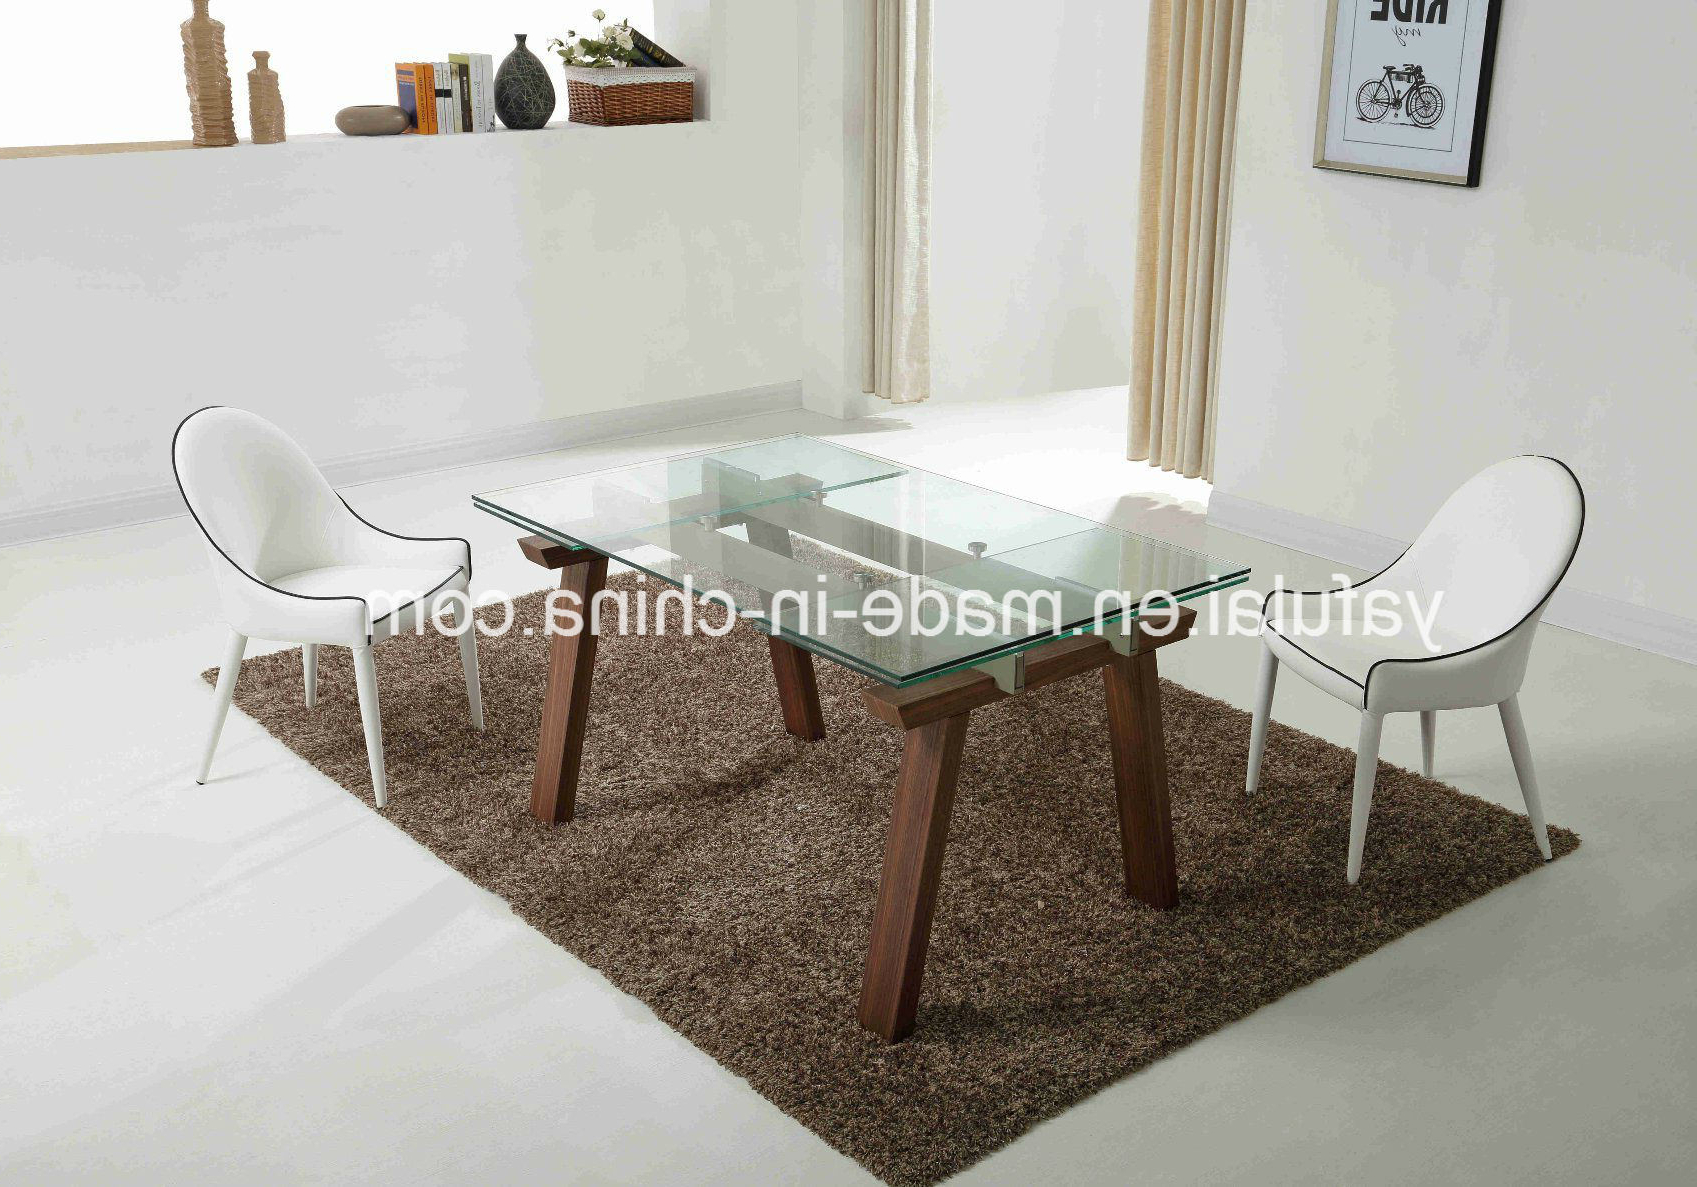 [%[Hot Item] Morden Glass Extension Dining Table Solid Wood Dining Furniture Inside Best And Newest Extension Dining Tables|Extension Dining Tables Pertaining To Widely Used [Hot Item] Morden Glass Extension Dining Table Solid Wood Dining Furniture|2019 Extension Dining Tables Intended For [Hot Item] Morden Glass Extension Dining Table Solid Wood Dining Furniture|Most Up To Date [Hot Item] Morden Glass Extension Dining Table Solid Wood Dining Furniture Within Extension Dining Tables%] (View 23 of 25)